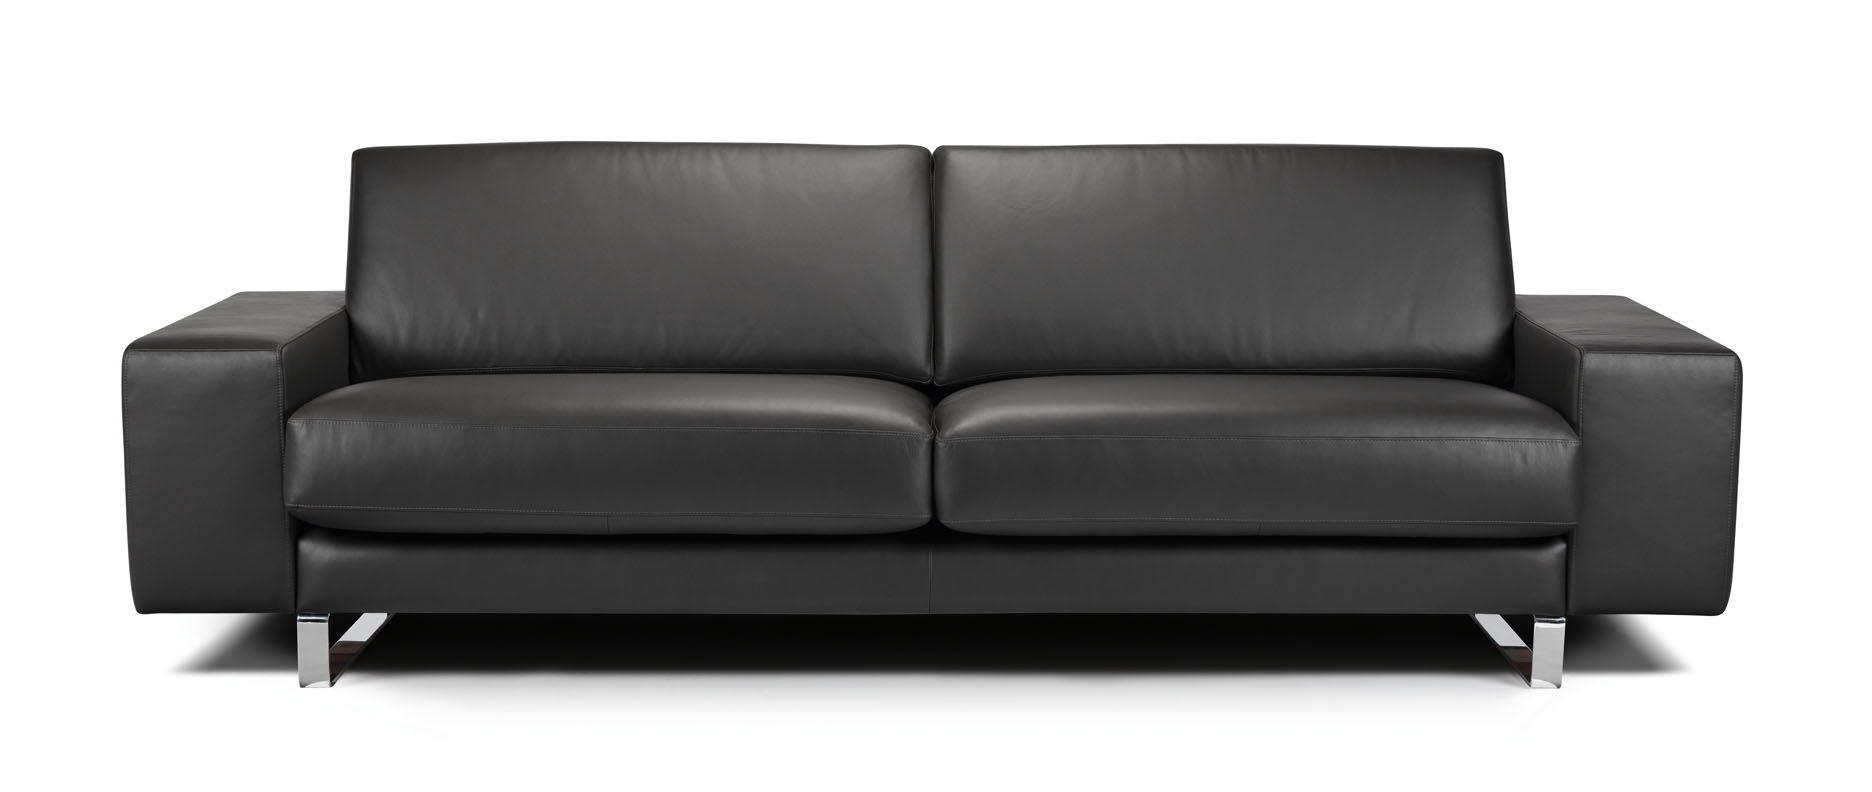 SMITH SOFA PE METAL BRACO LARGO